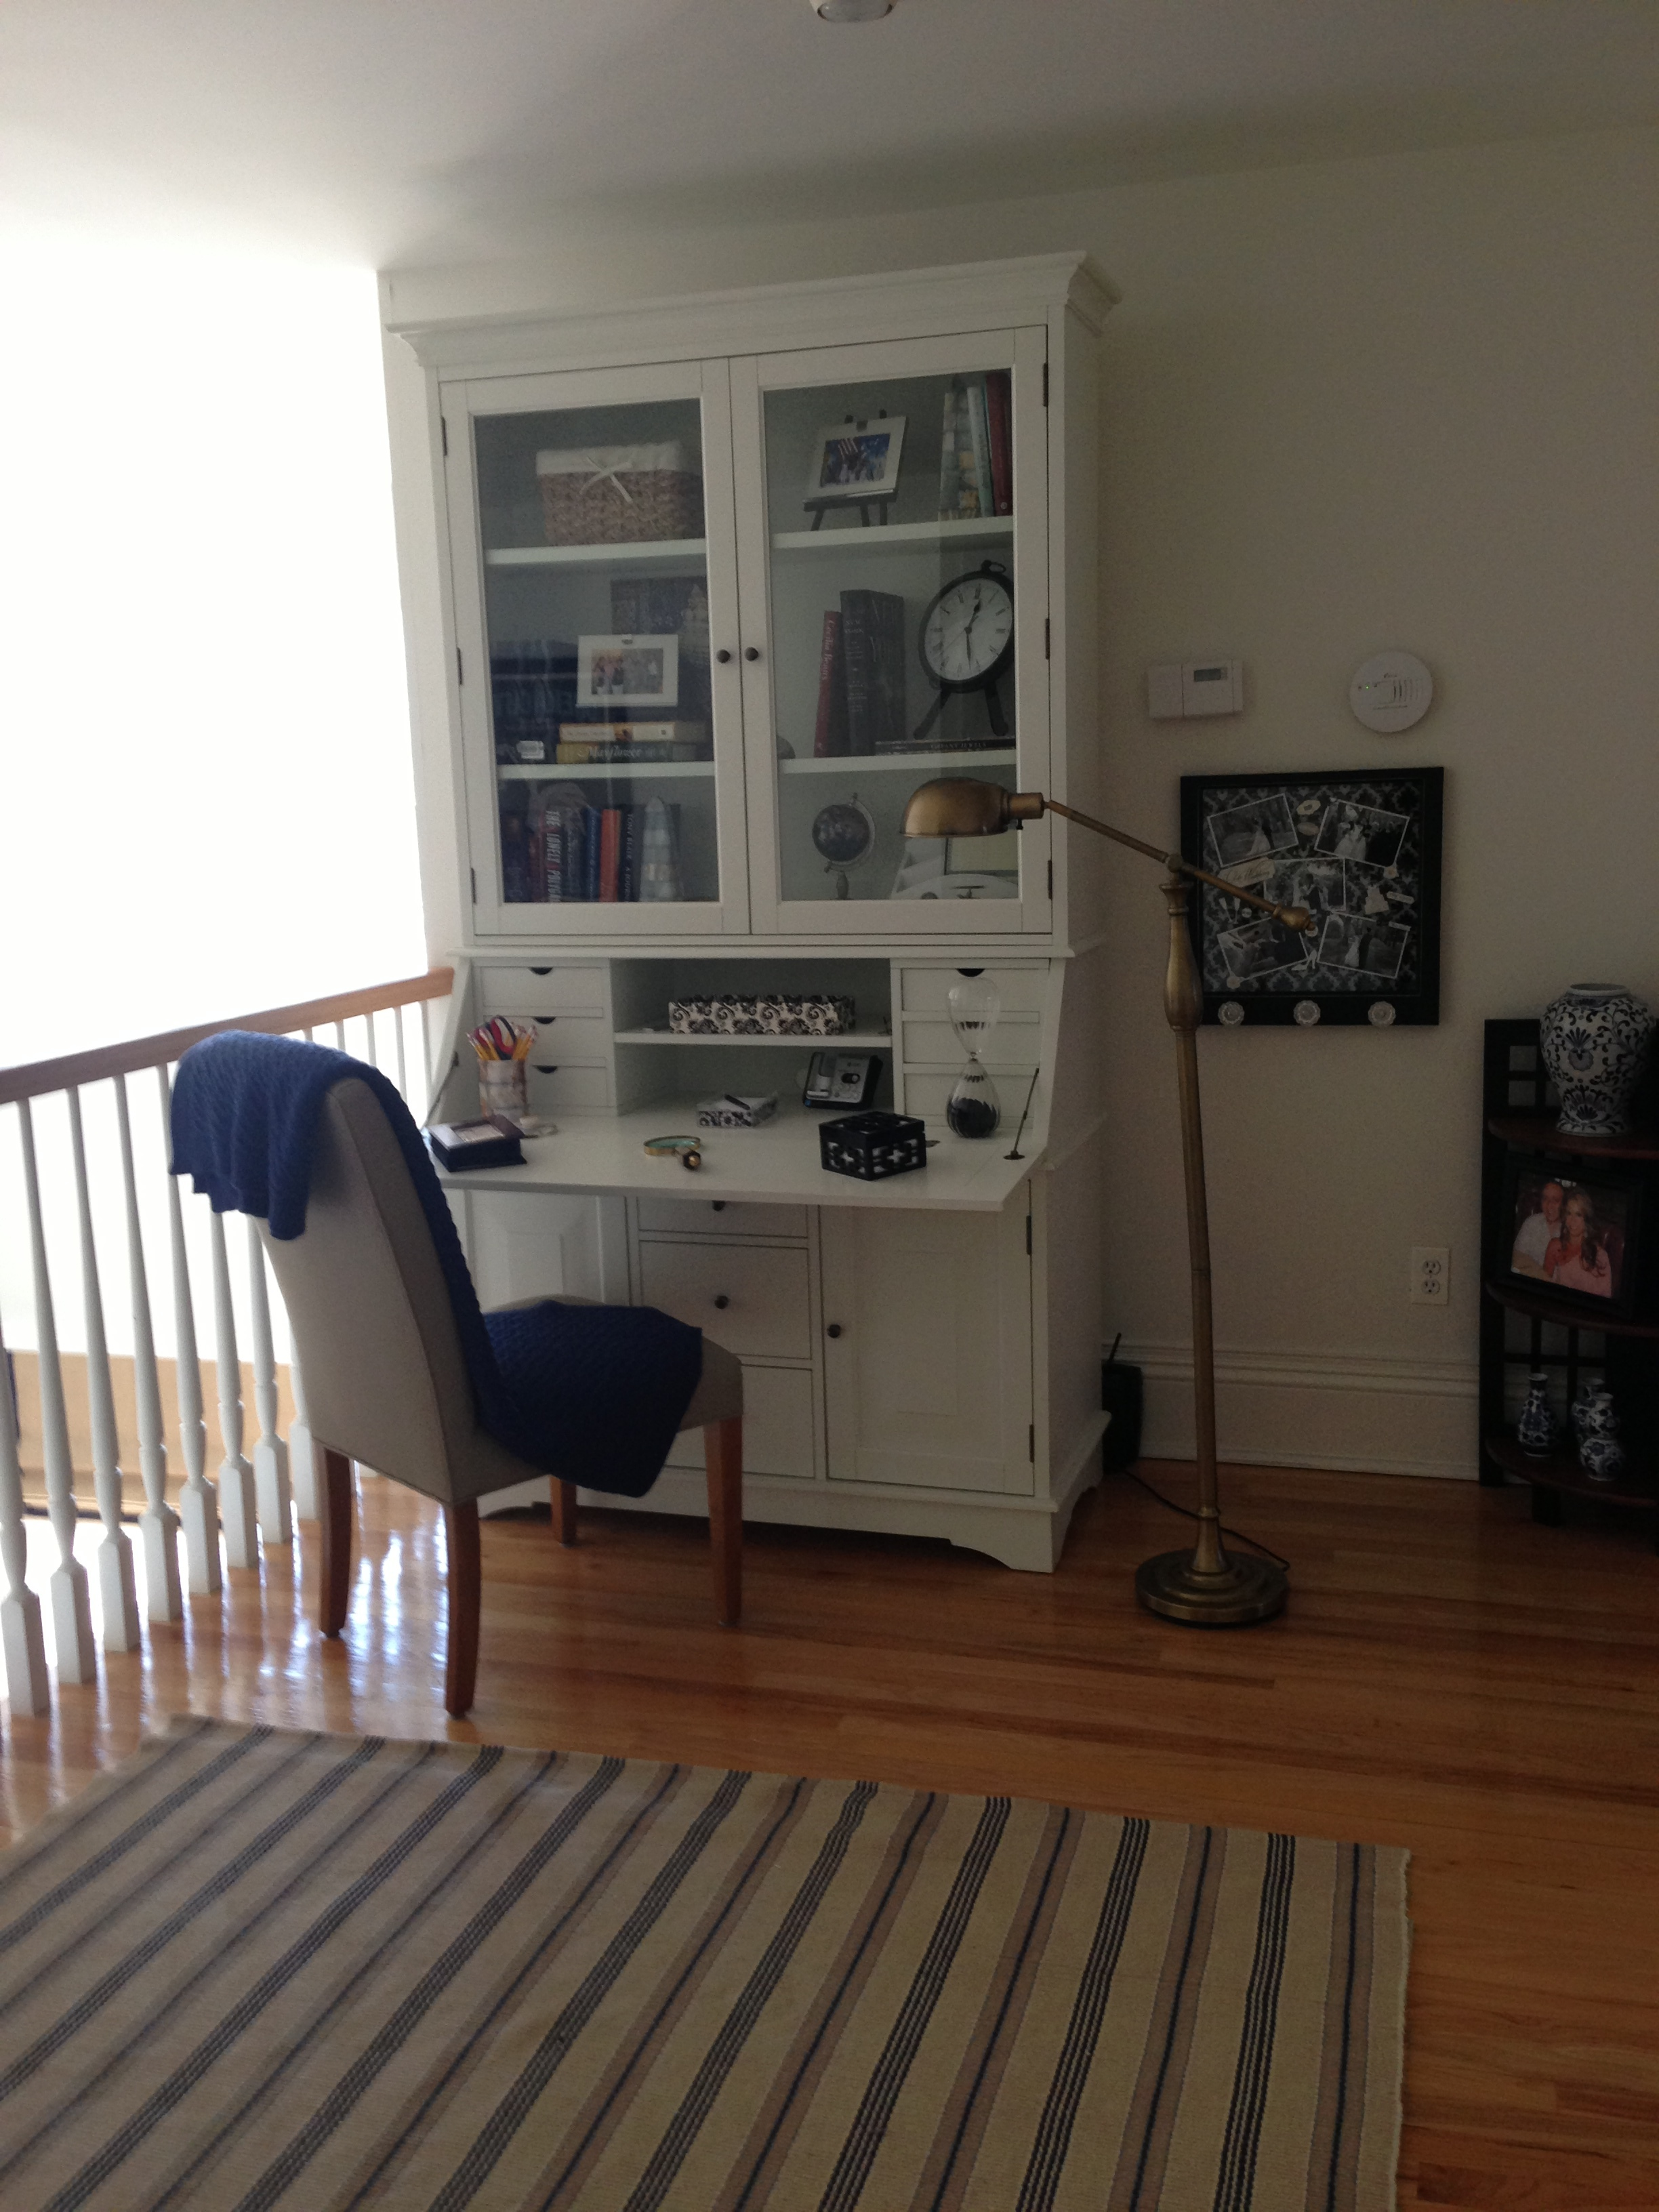 White cabinet on the wall and a blue chair